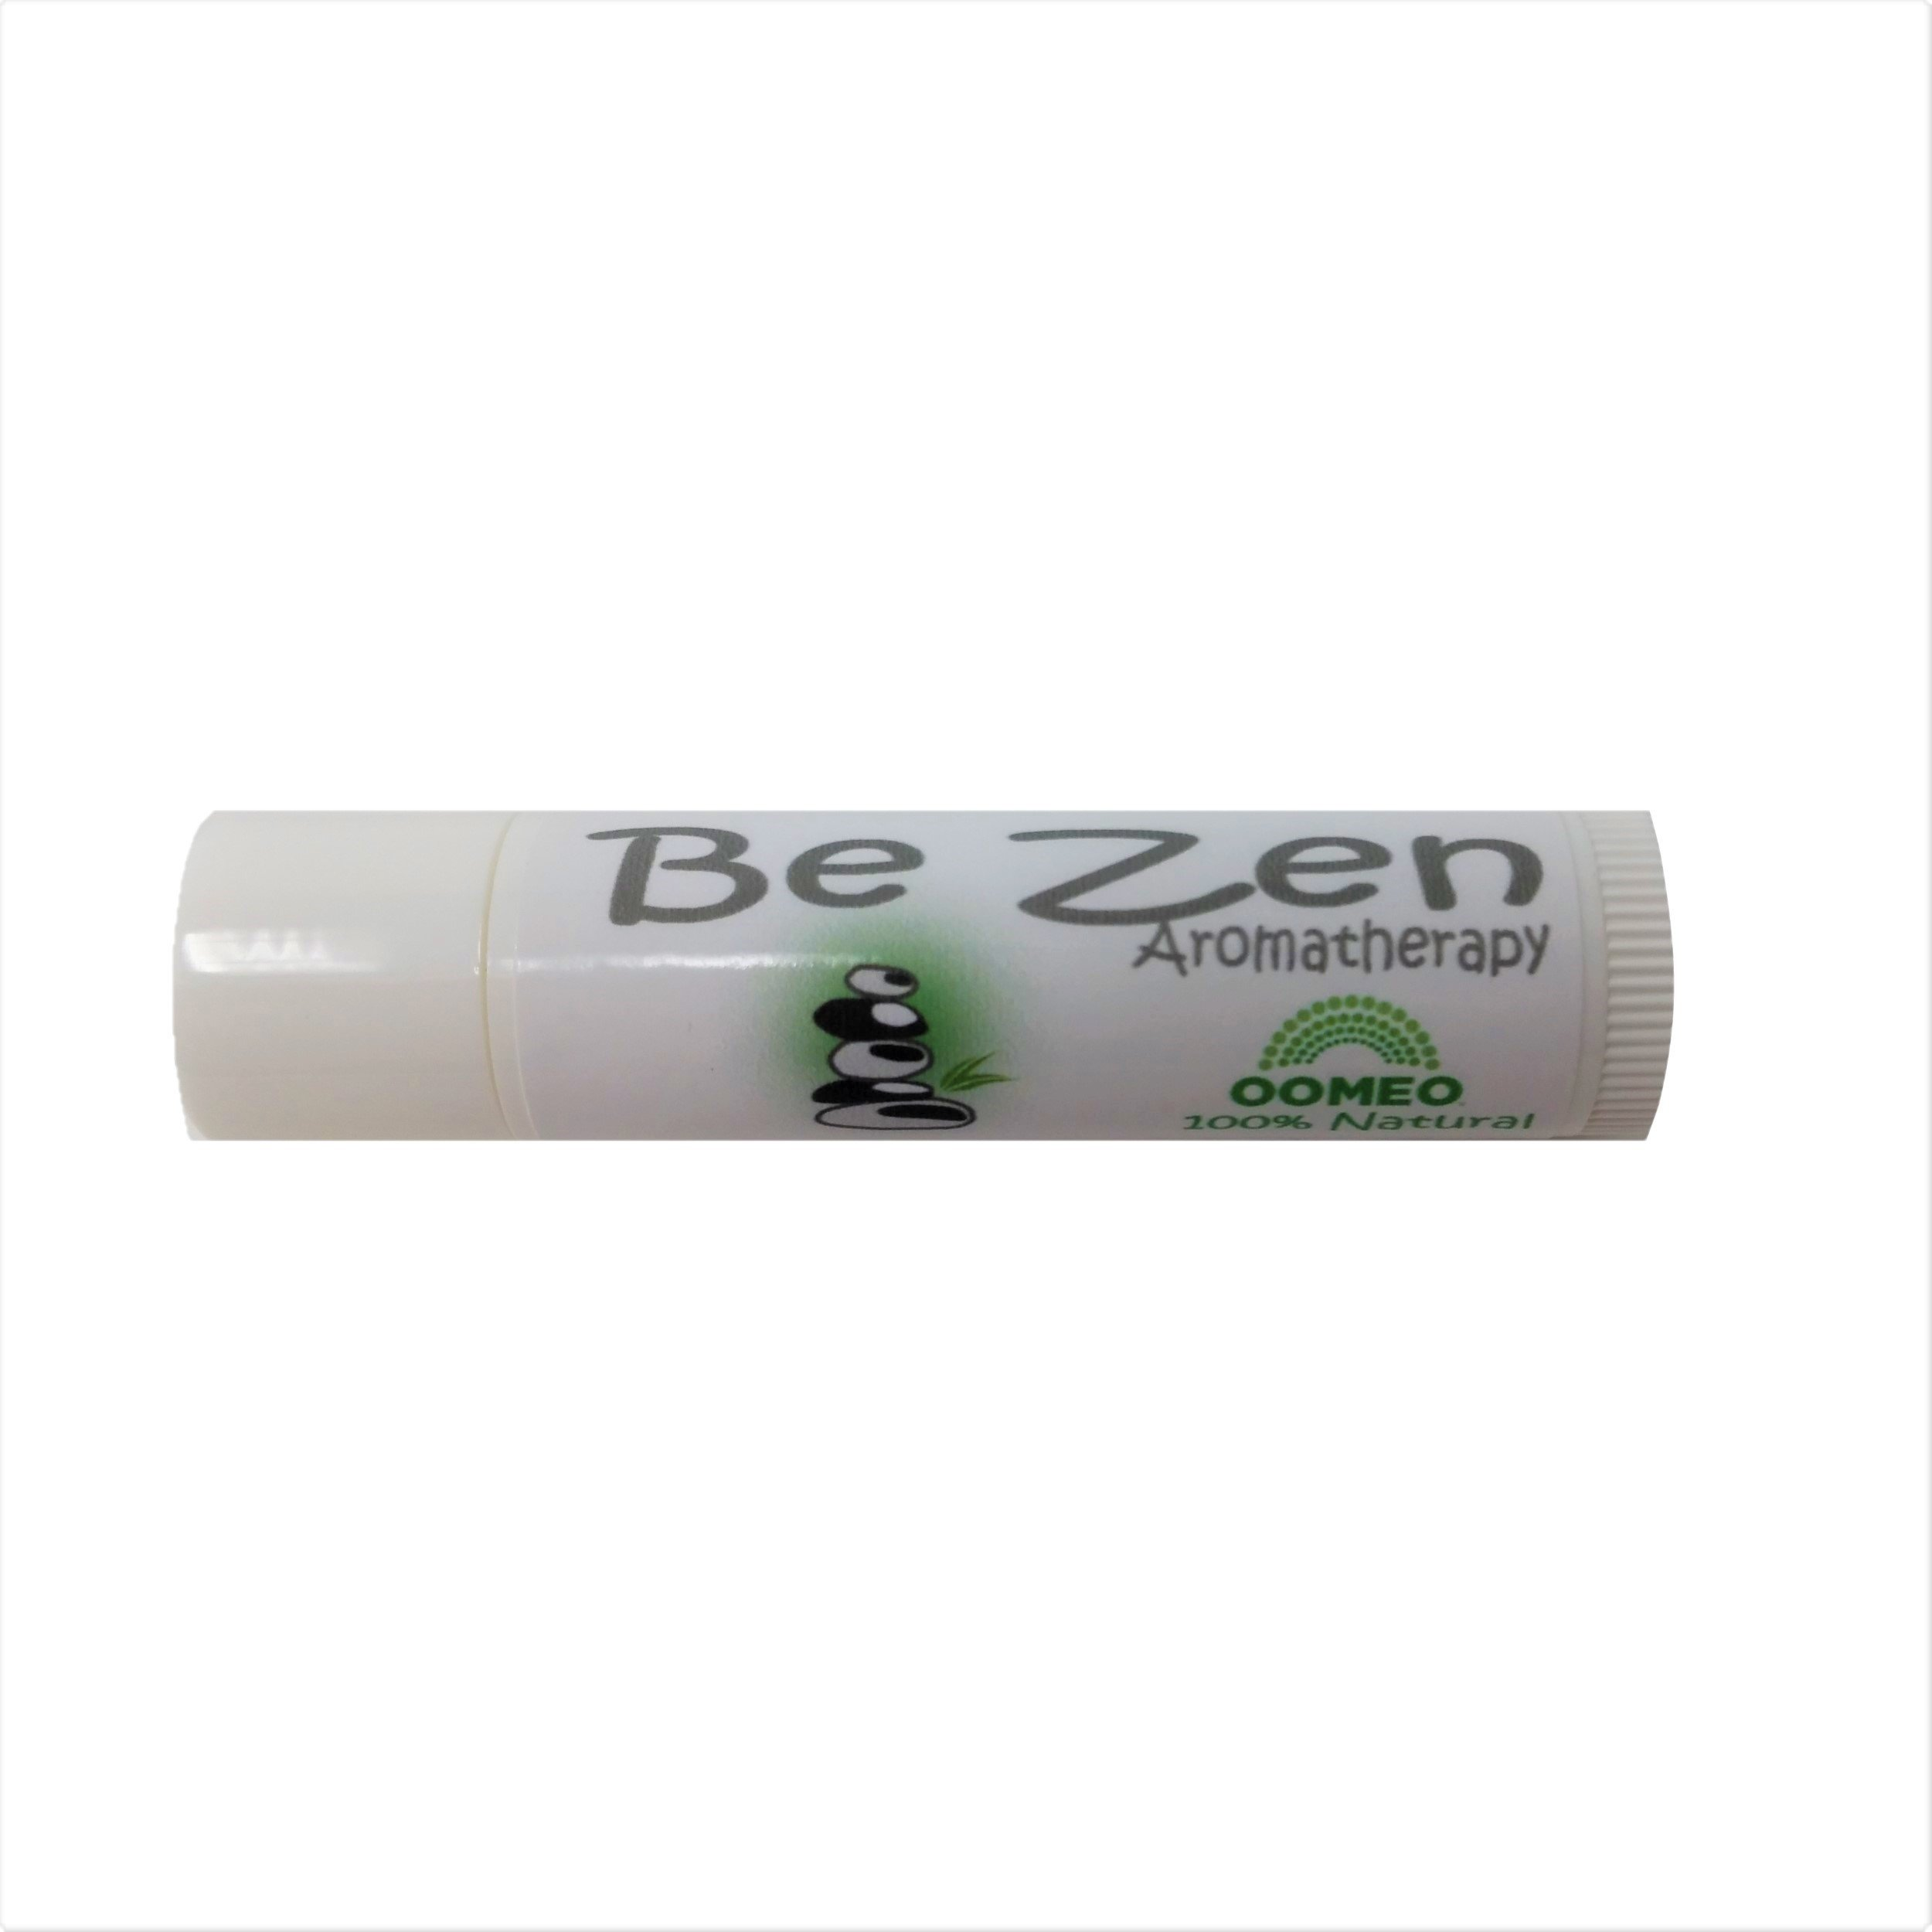 Be zen balm (stick)